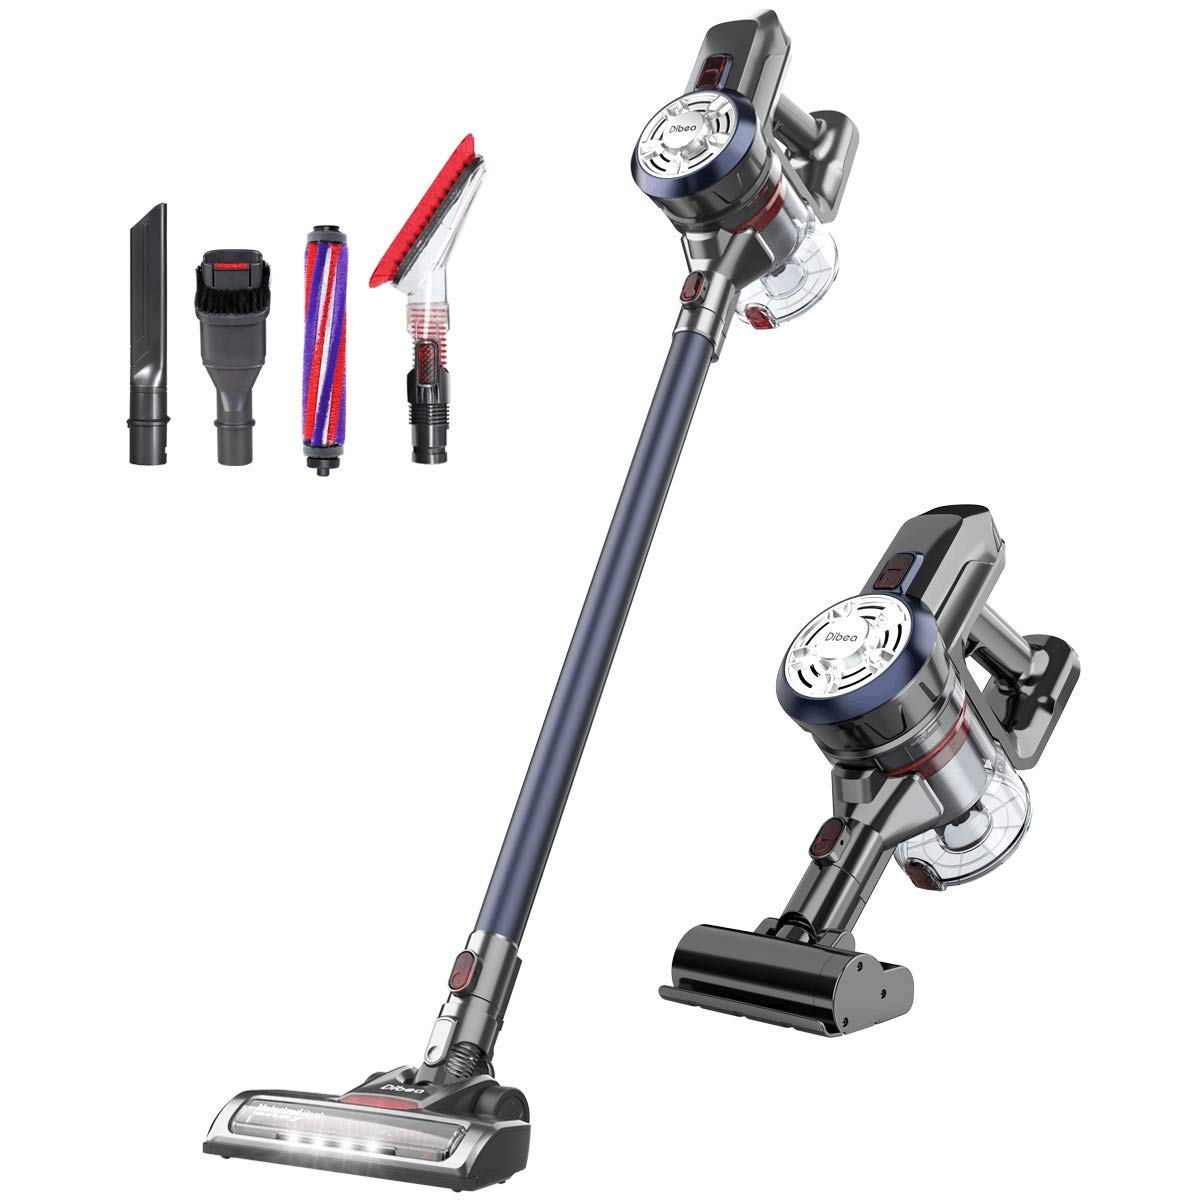 Dibea D18Pro Cordless Stick Vacuum Cleaner Lightweight 17KPa Powerful Suction Bagless Rechargeable 2 in 1 Handheld Car Vacuum with Mini Motorized Brush, Navy Blue